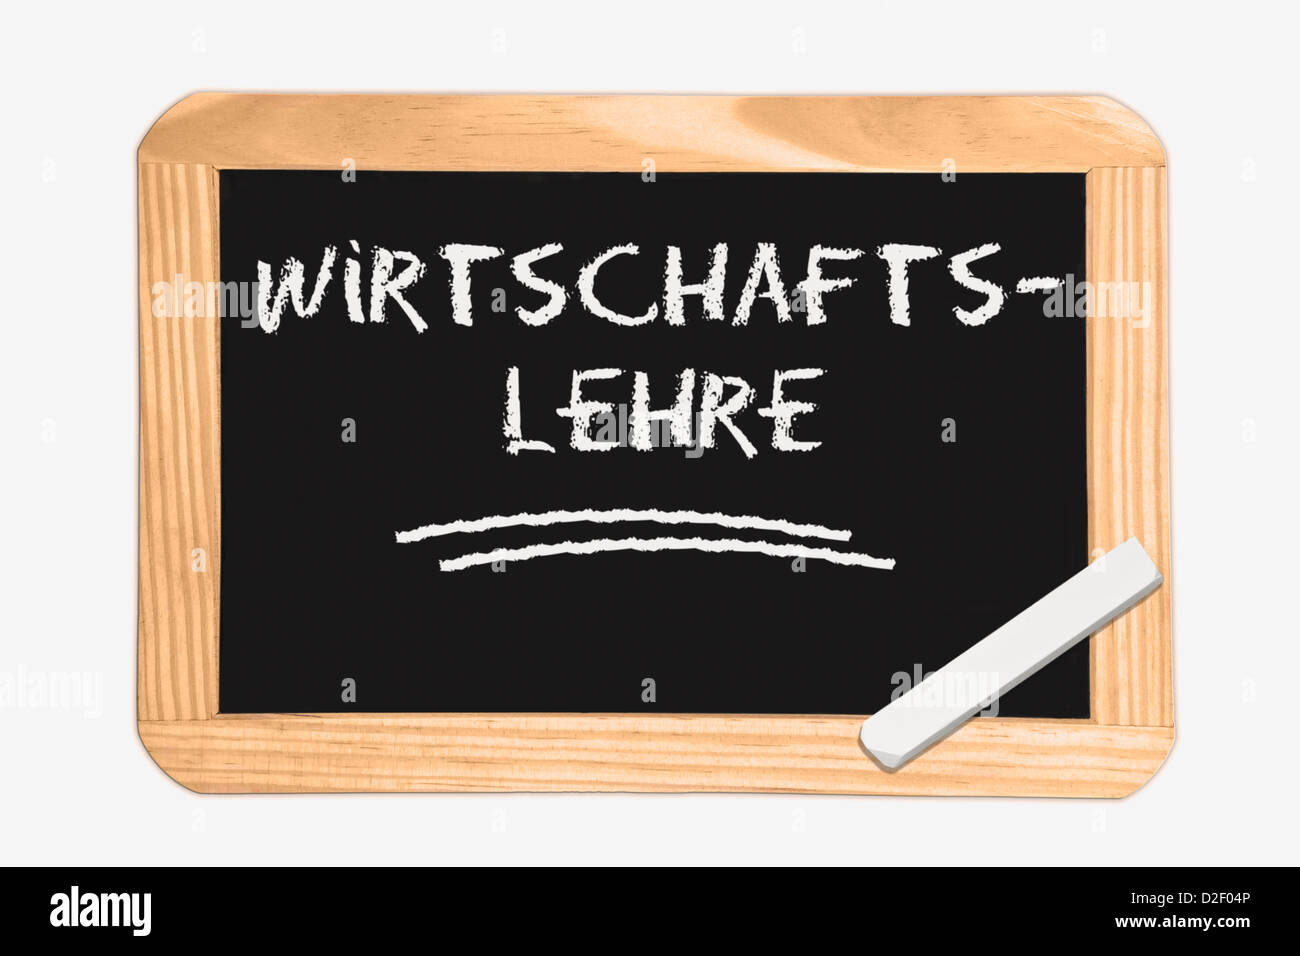 Detail photo of a Chalkboard with the German inscription business studies, white chalk lies in a corner - Stock Image